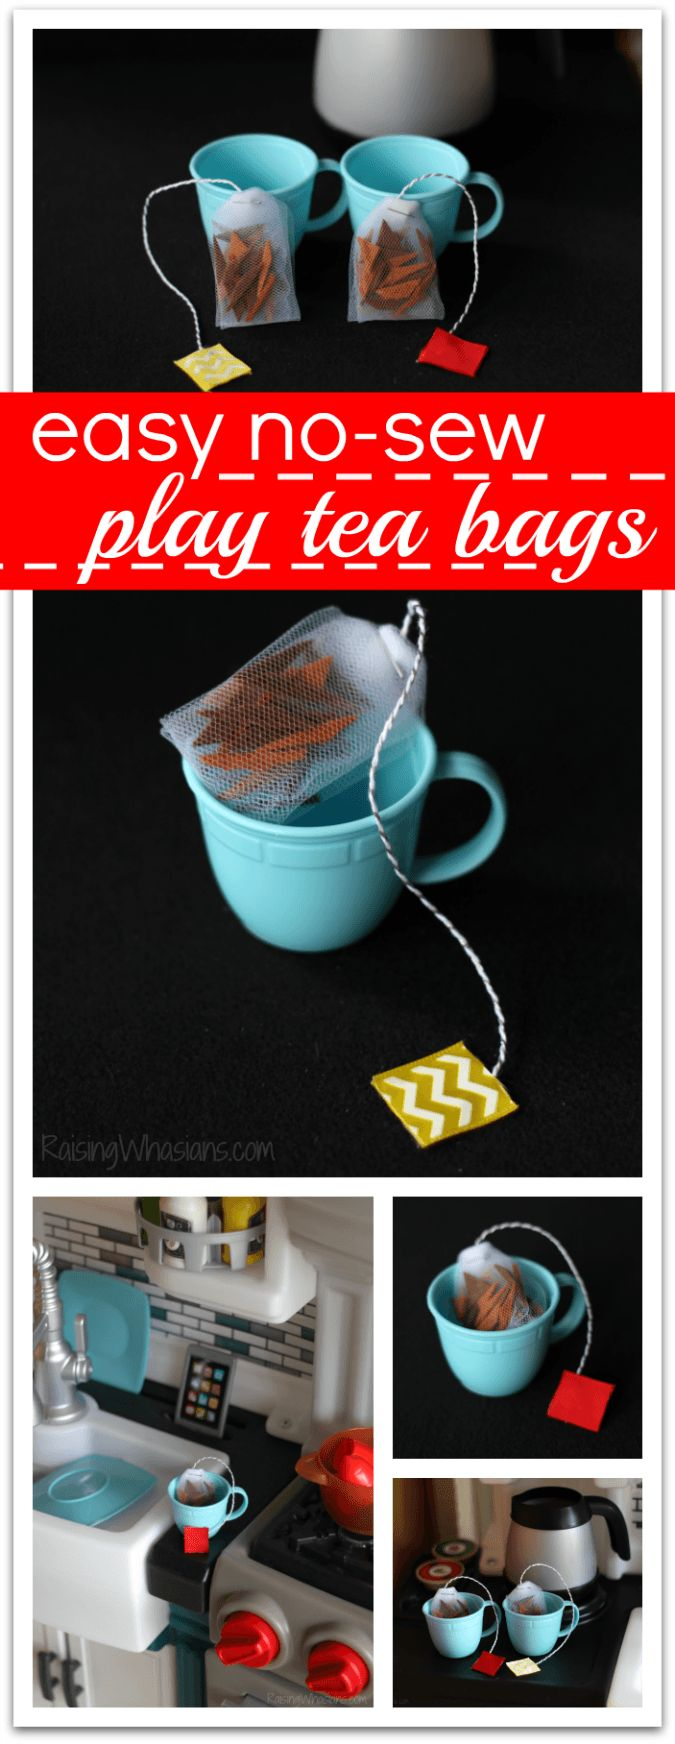 No Sew Play Tea Bags Tutorial + Pretend Kitchen Fun | DIY felt tea bags craft for kids (ad)